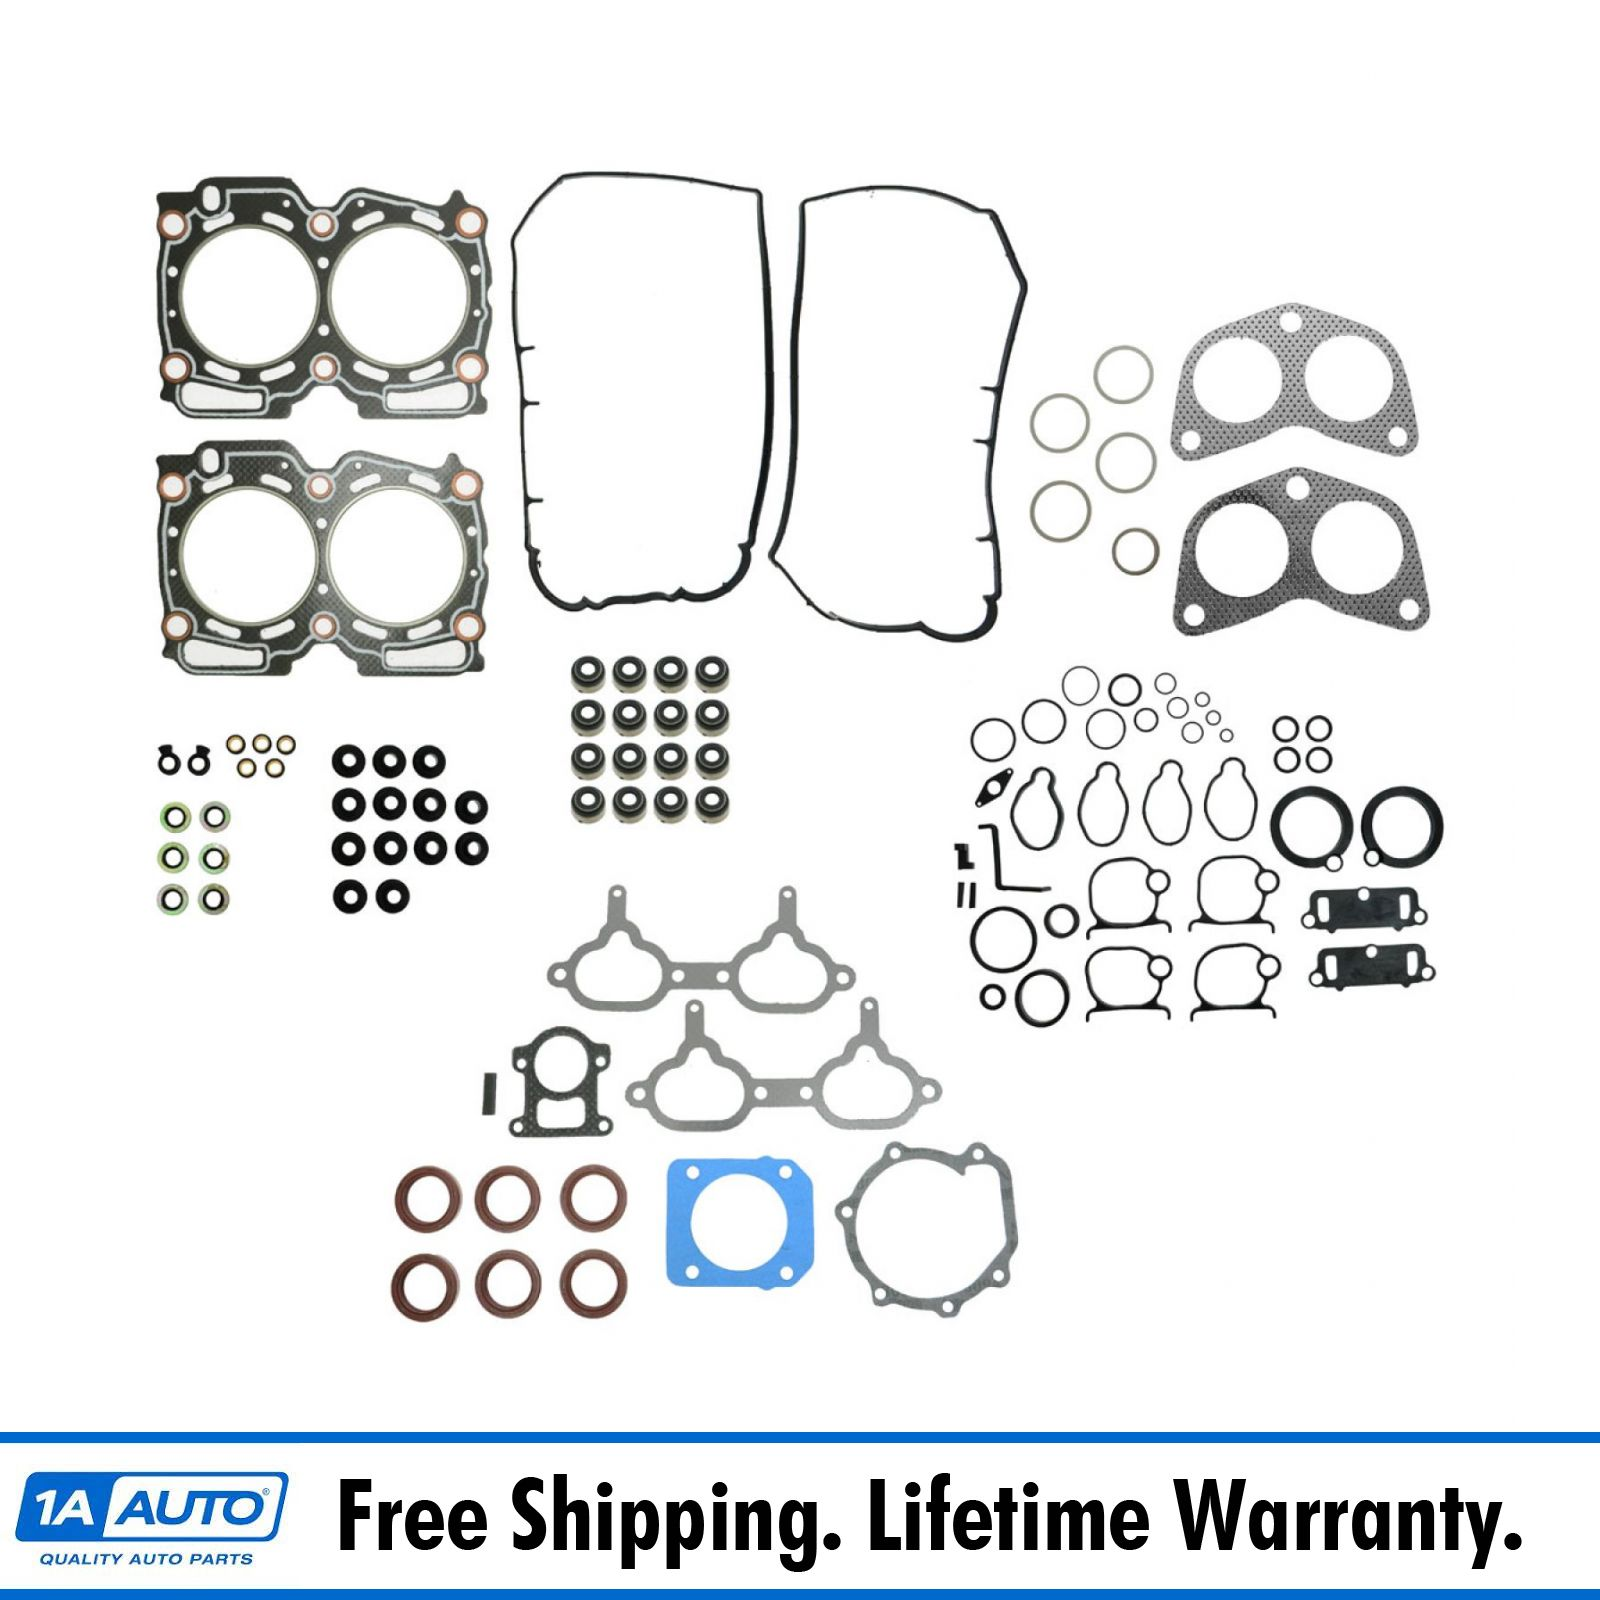 engine head manifold gasket set kit for impreza legacy